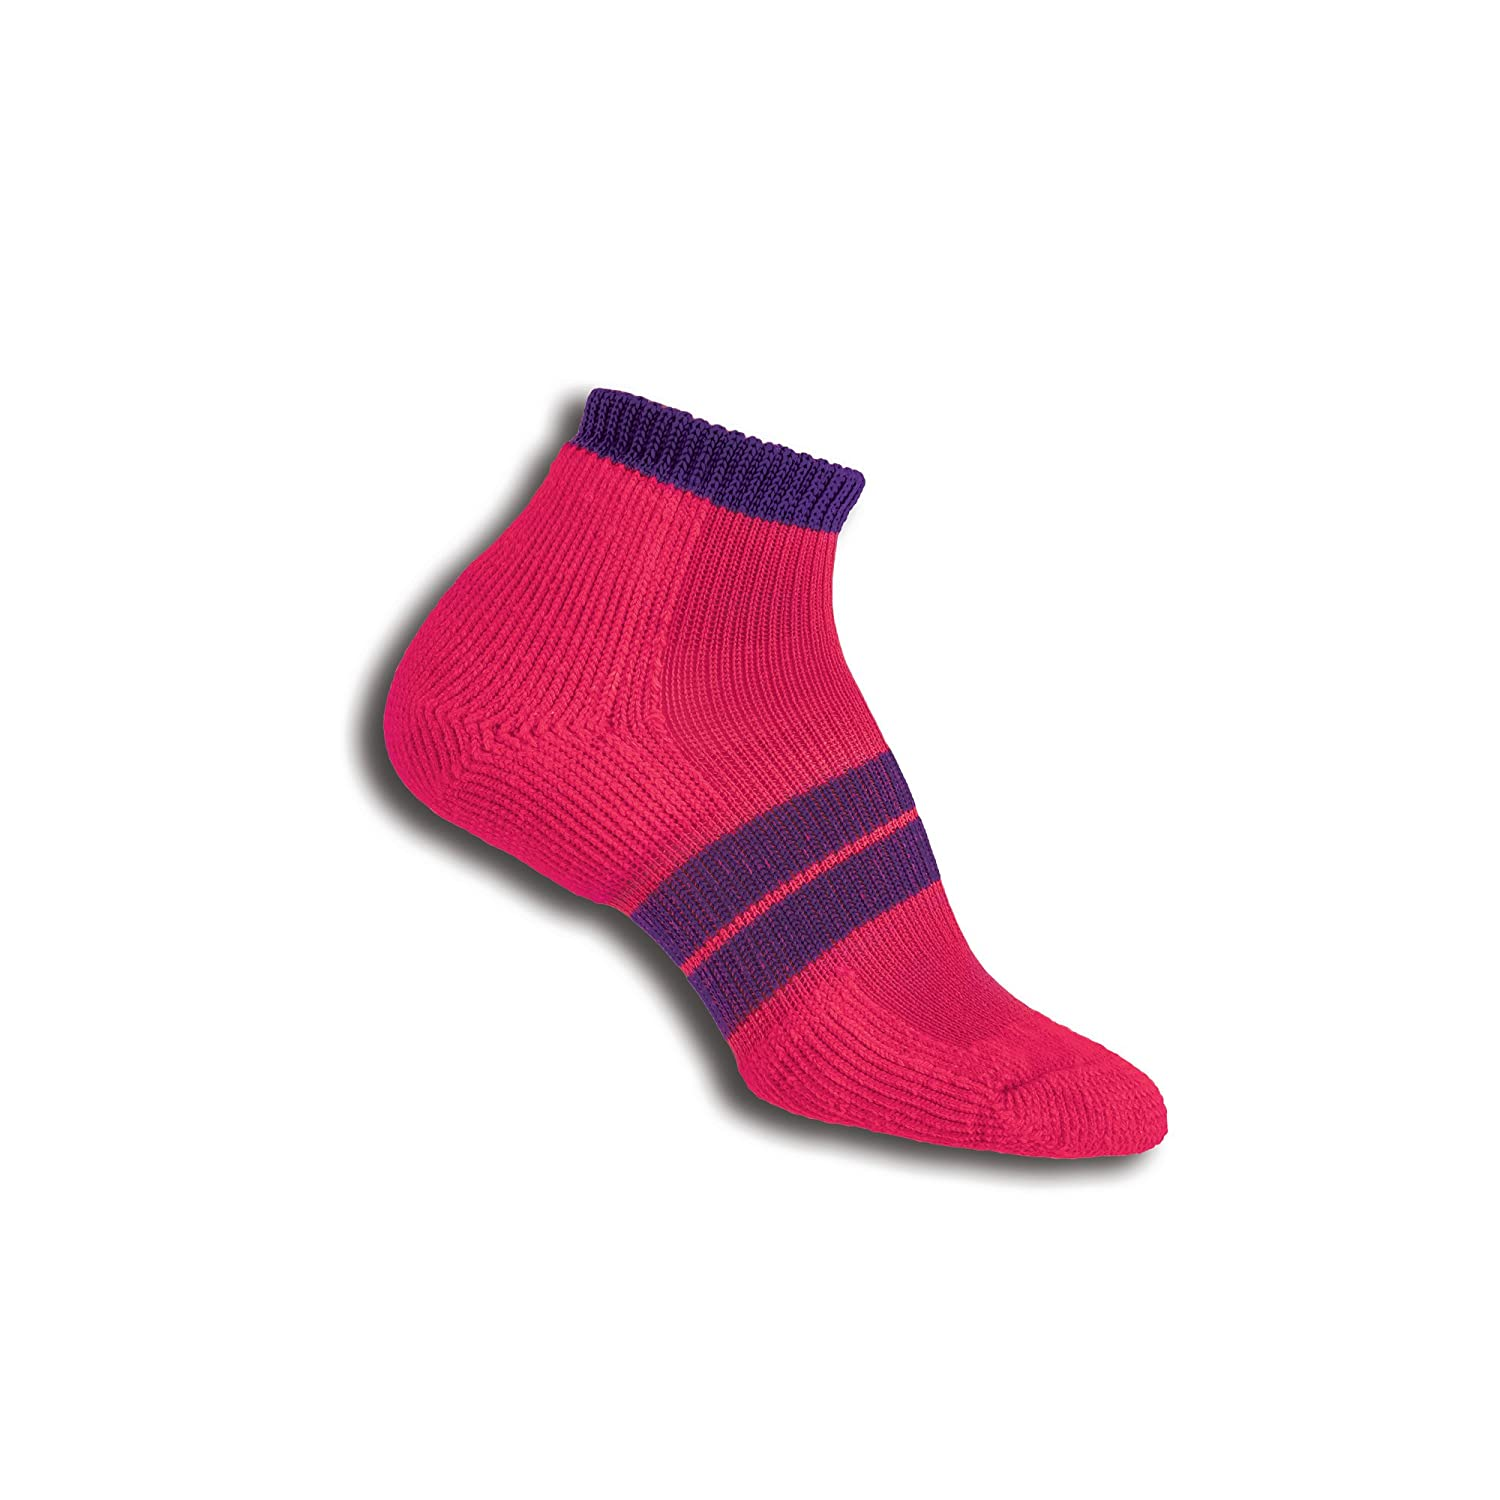 thorlos womens 84 N Running Thick Padded Low Cut Sock Thorlo Inc. 84 NW